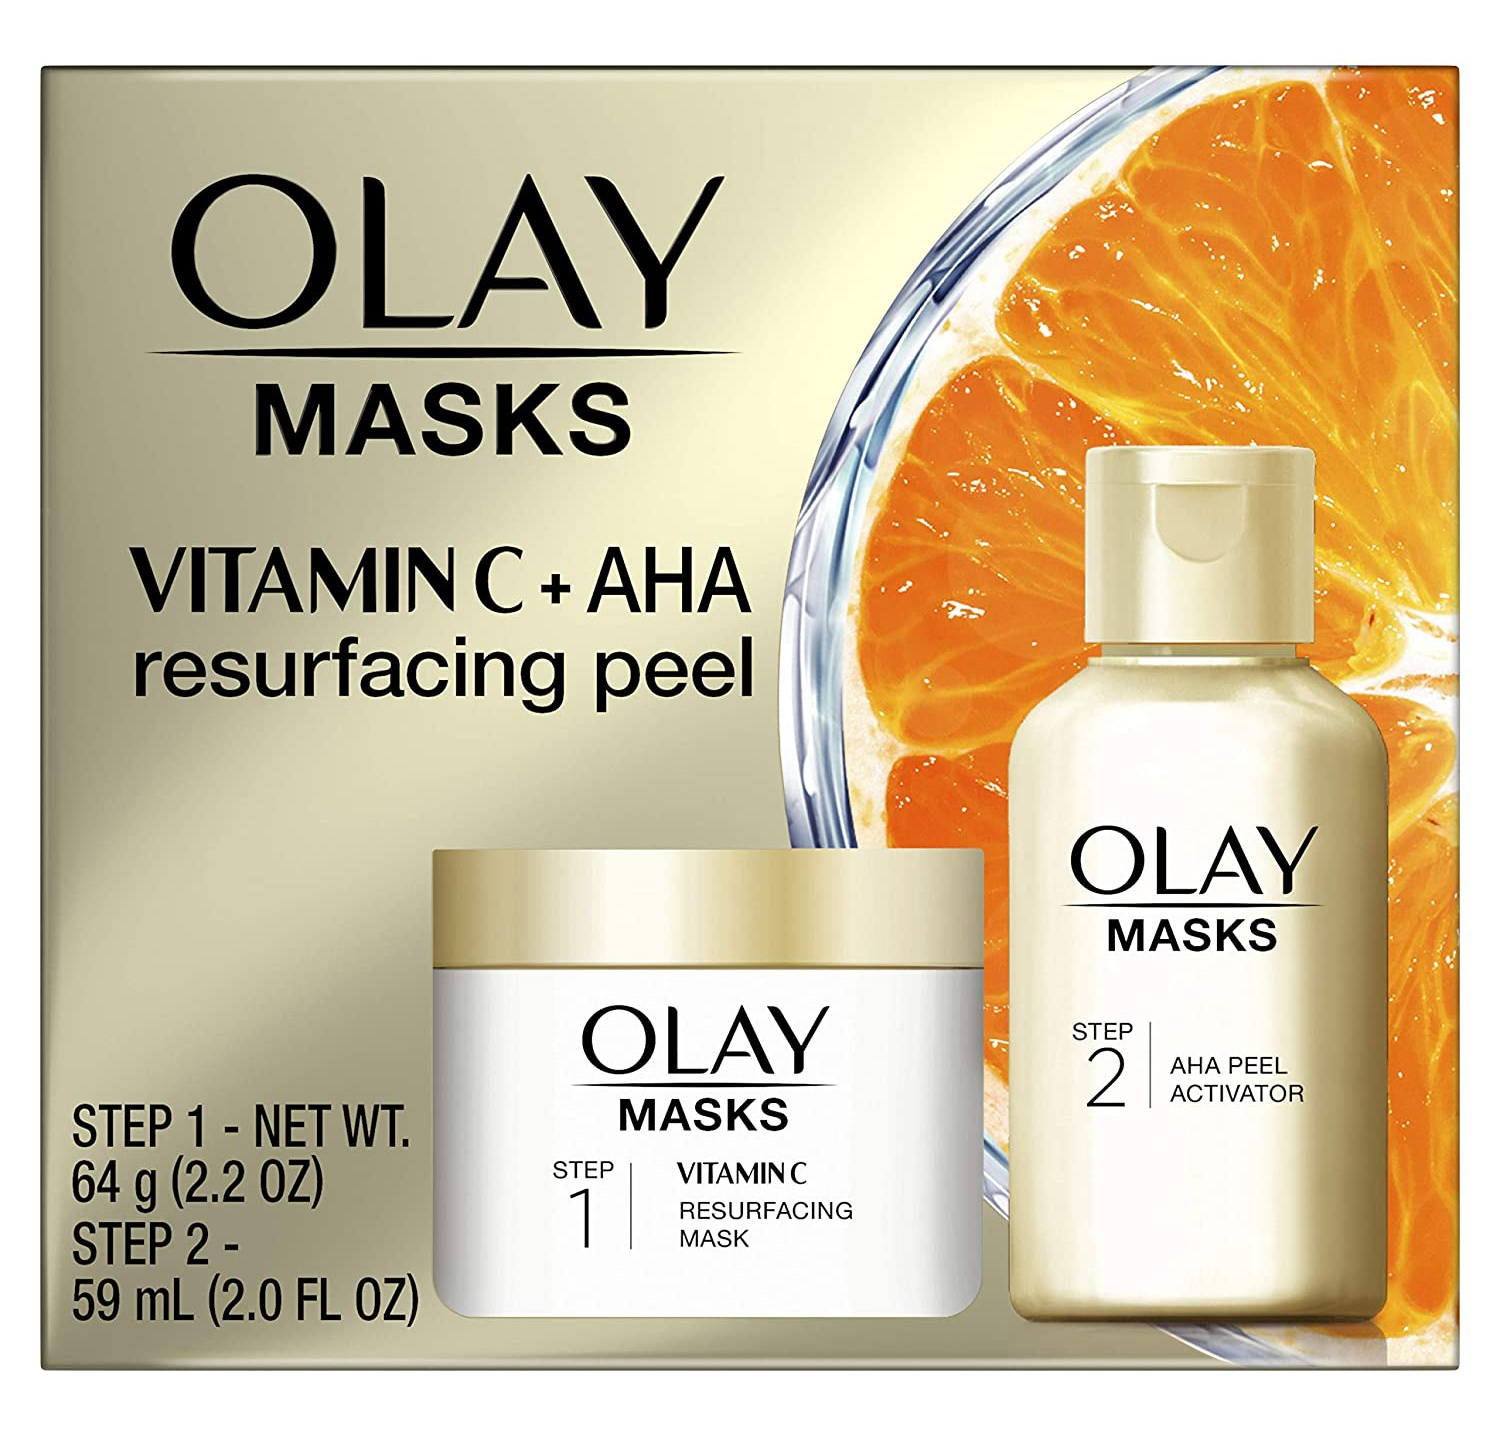 Olay Vitamin C Resurfacing Mask & Resurfacing Peel (Step 1)